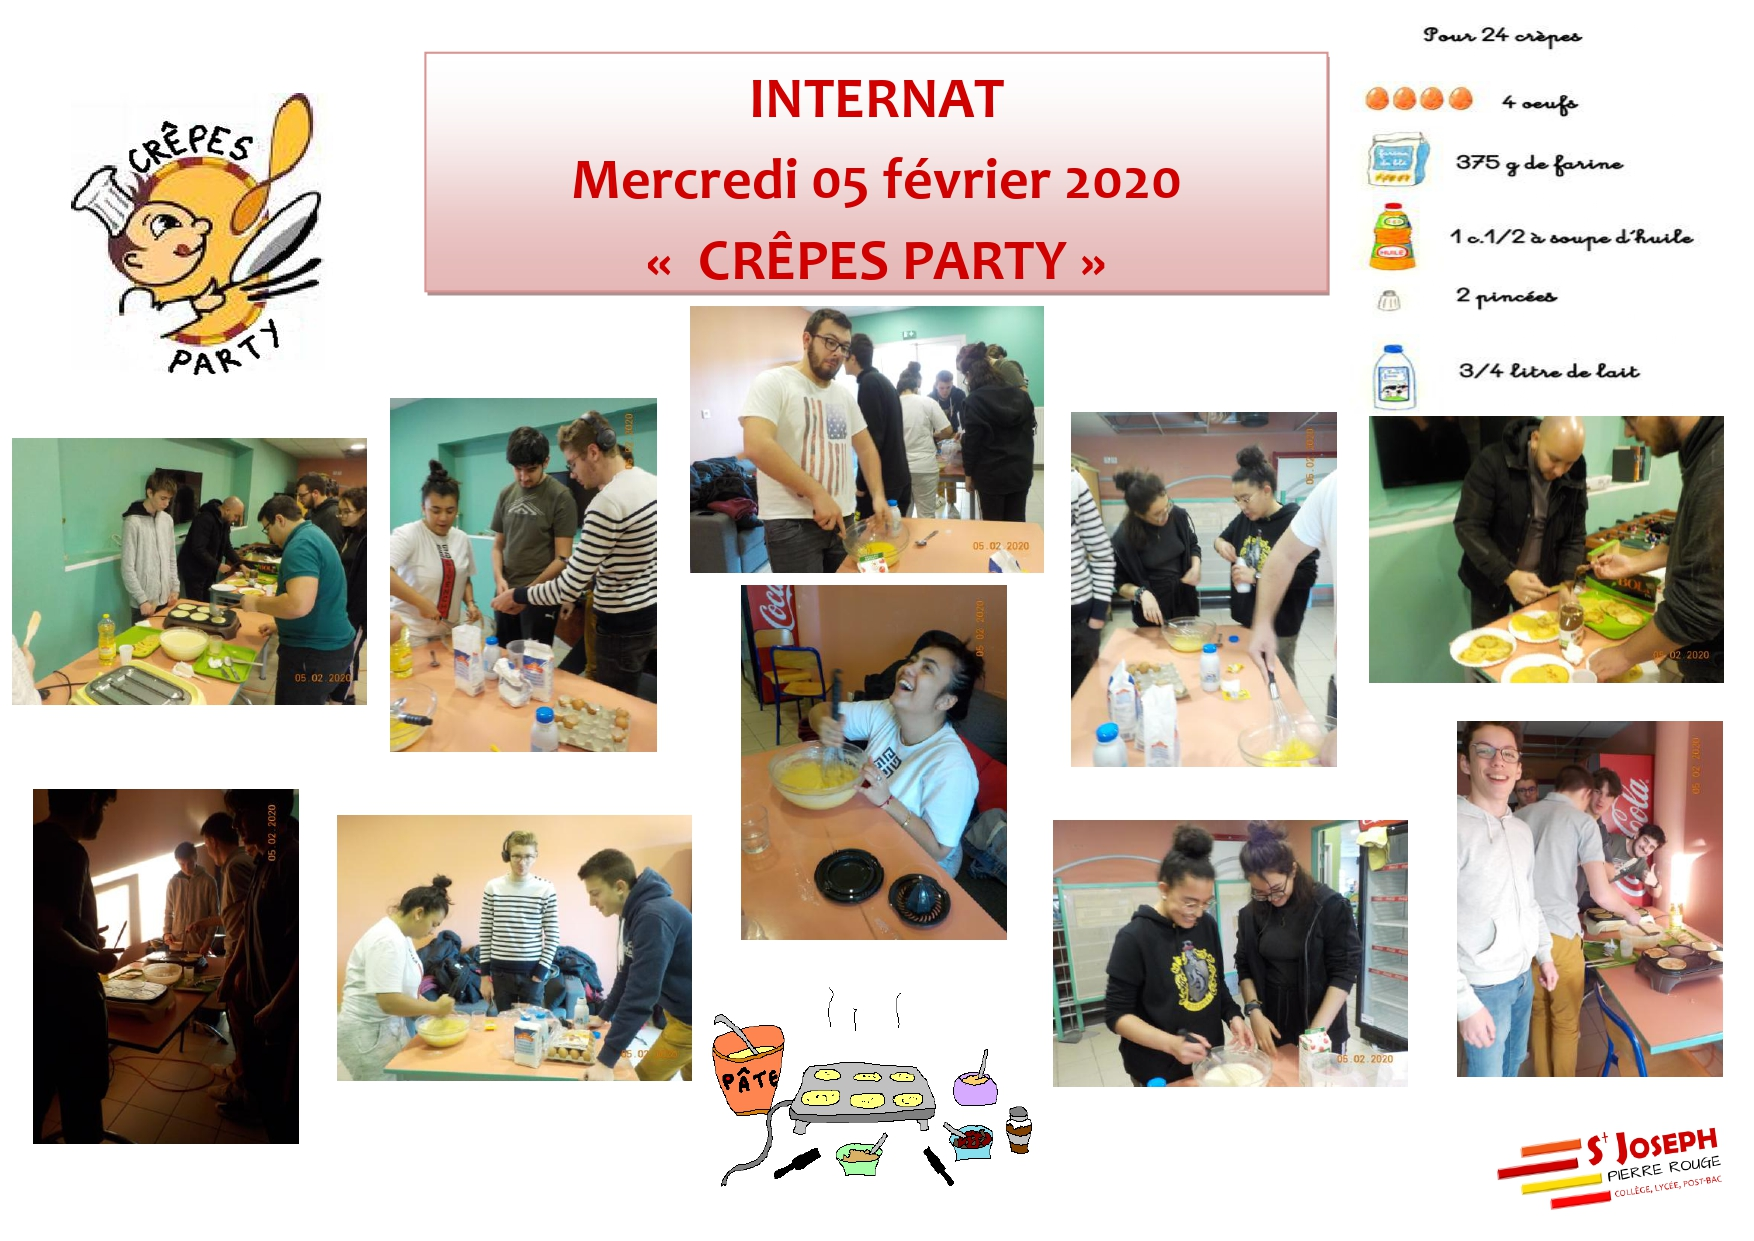 INTERNAT CREPES PARTY 5 fvrier 2020